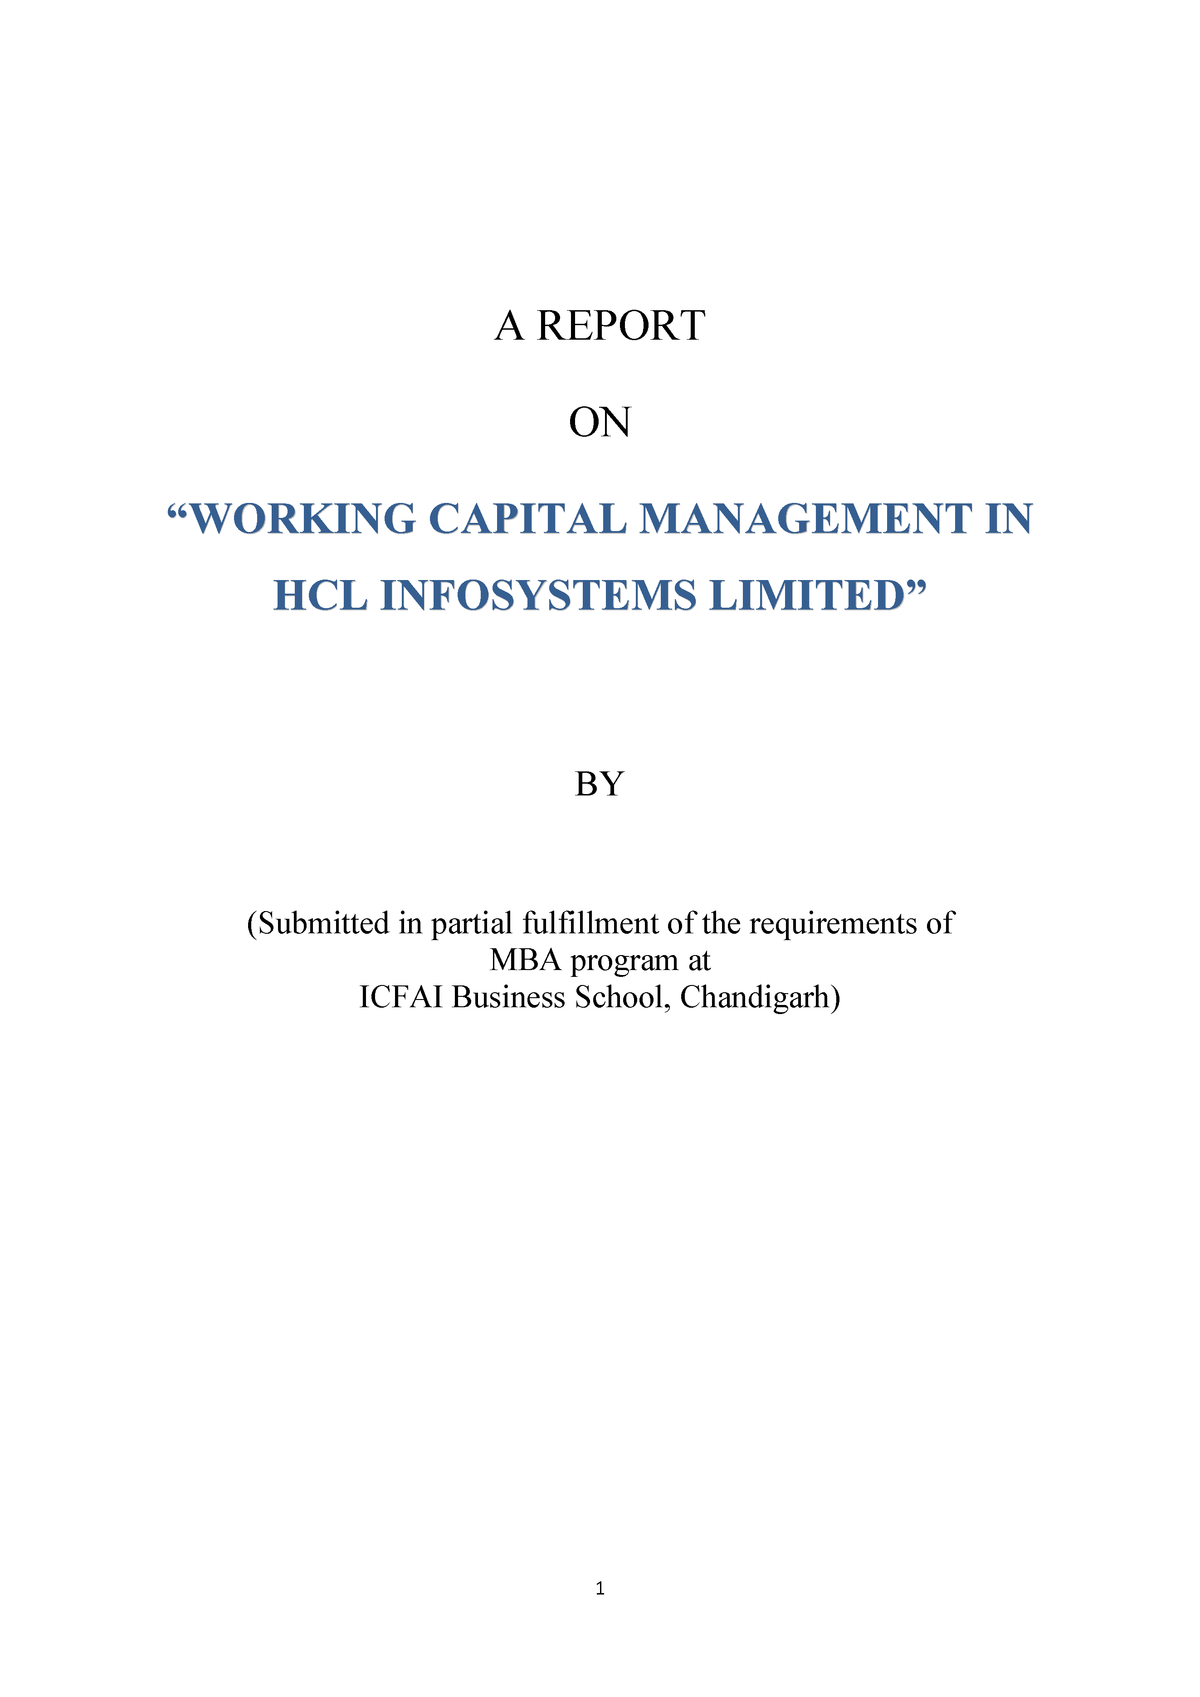 Project Report on working capital management in HCL - MBA: MBA - StuDocu